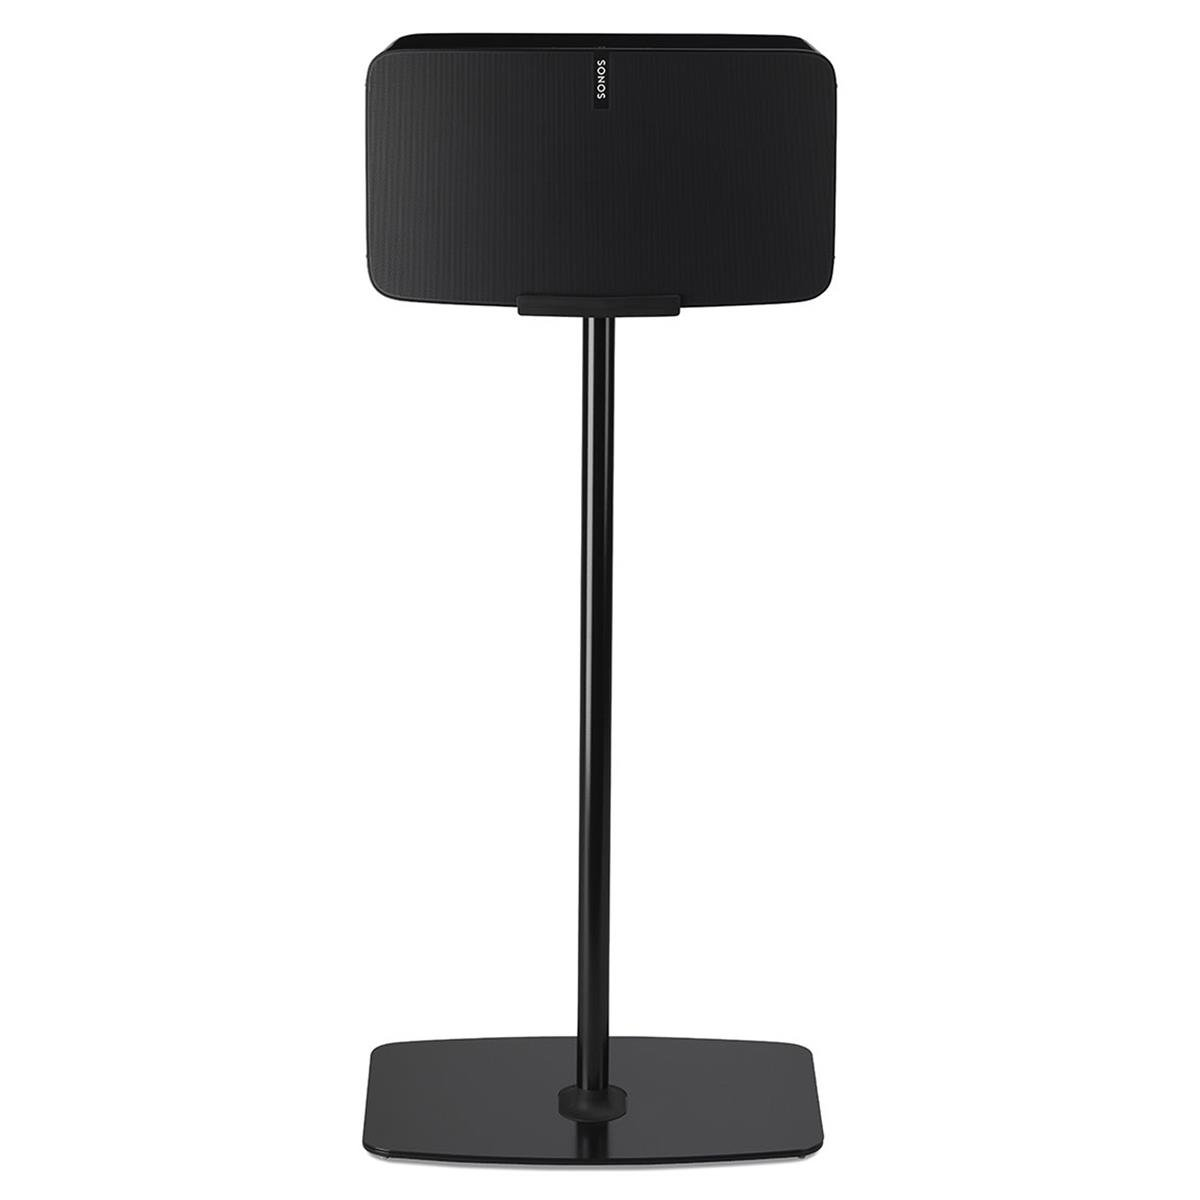 Flexson Floorstand for Sonos Play:5 Gen 2 in Black (Horizontal, Single)